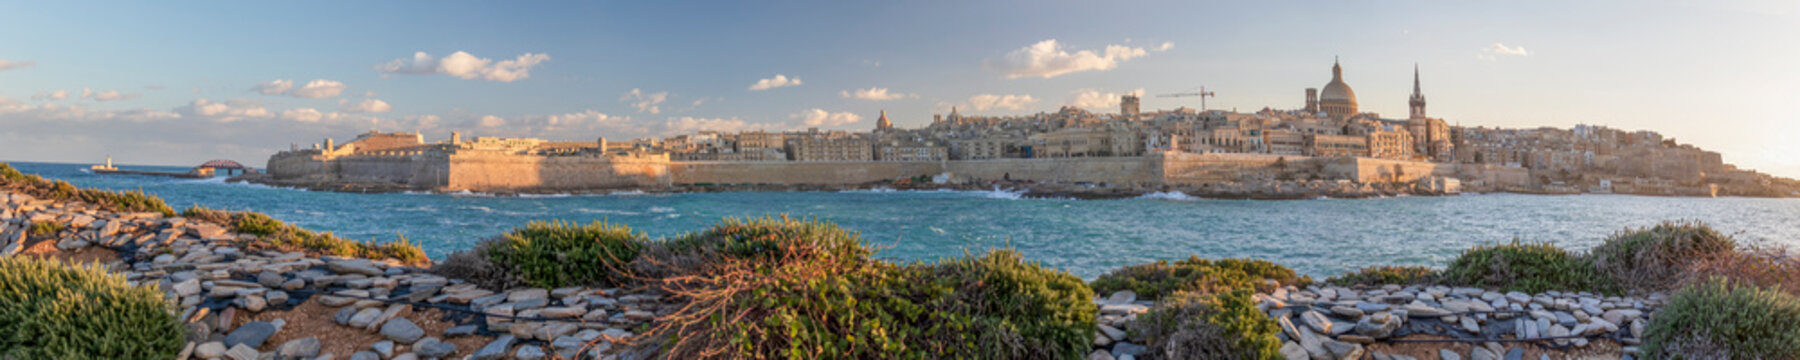 Panoramic view of Valletta, seafront skyline of the capital city of Malta from Sliema shoreline with green flora